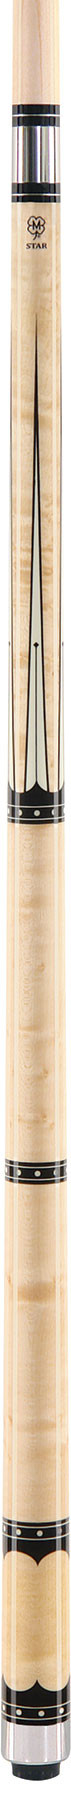 McDermott Star S58 Natural Billiards Pool Cue Stick